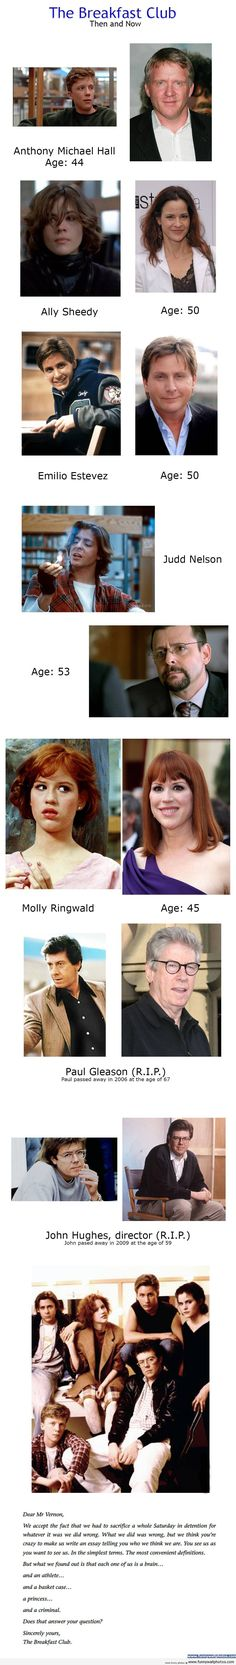 The Breakfast Club Then And Now | Funny Wall Photos